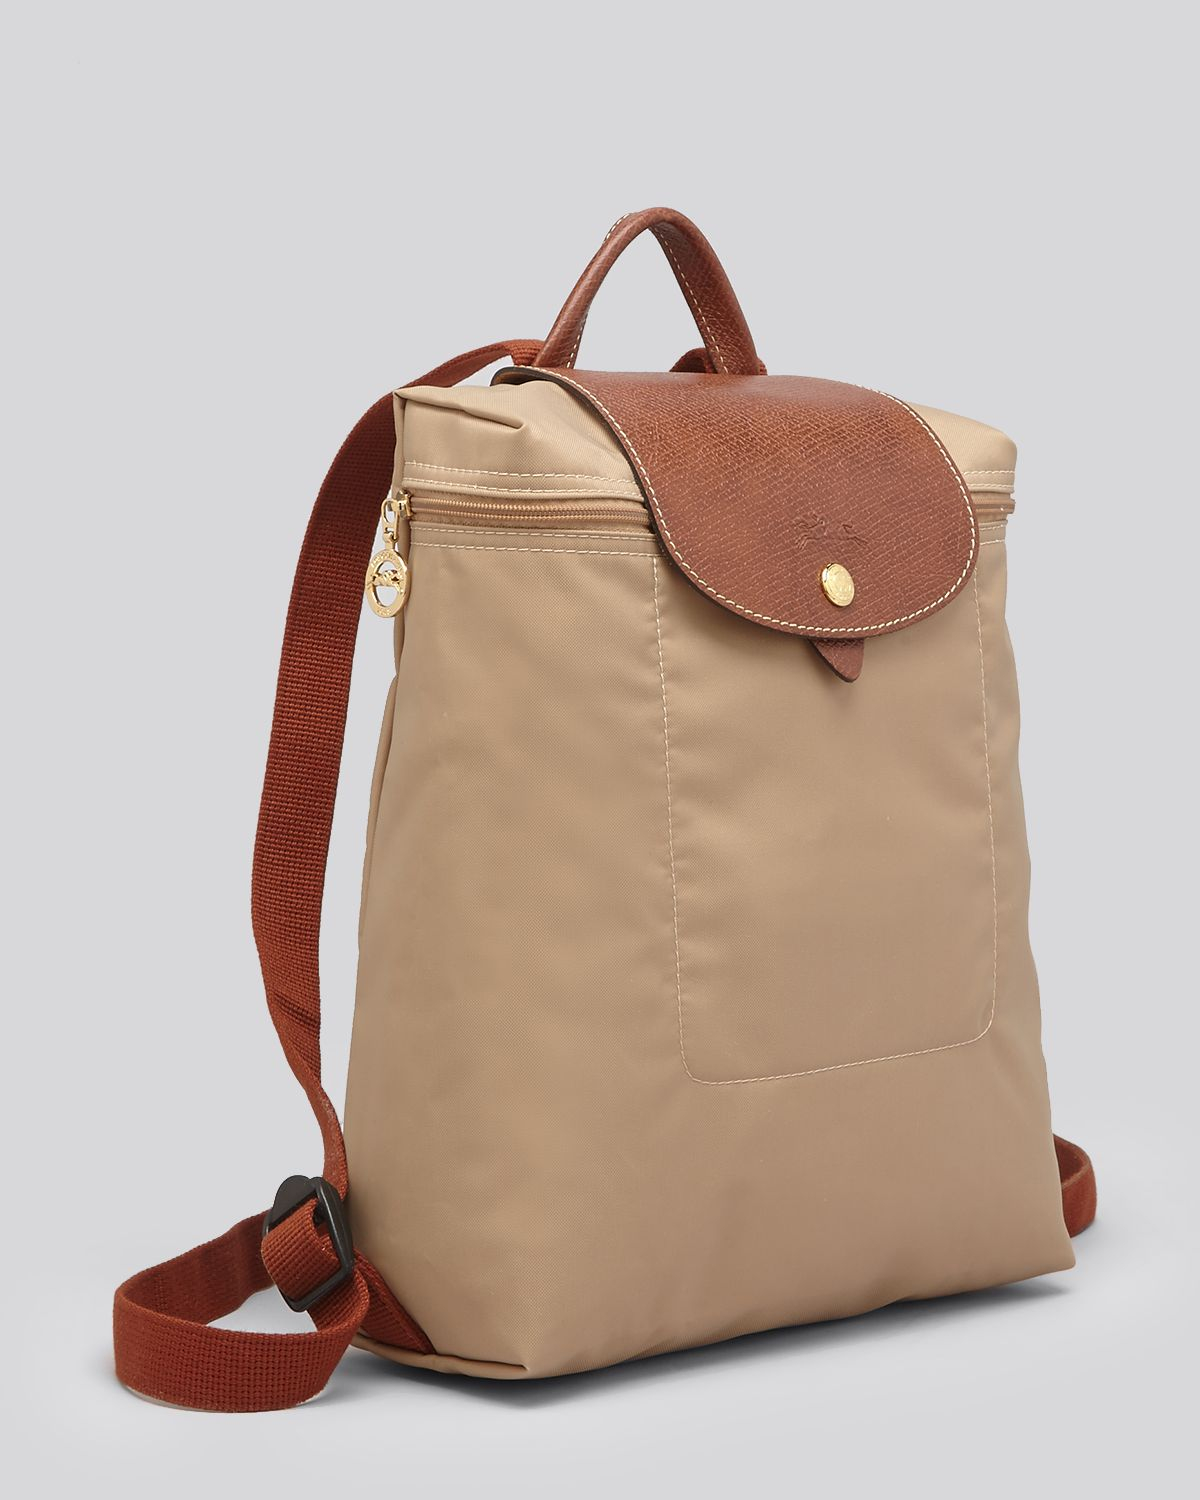 Le Pliage Longchamp Backpack